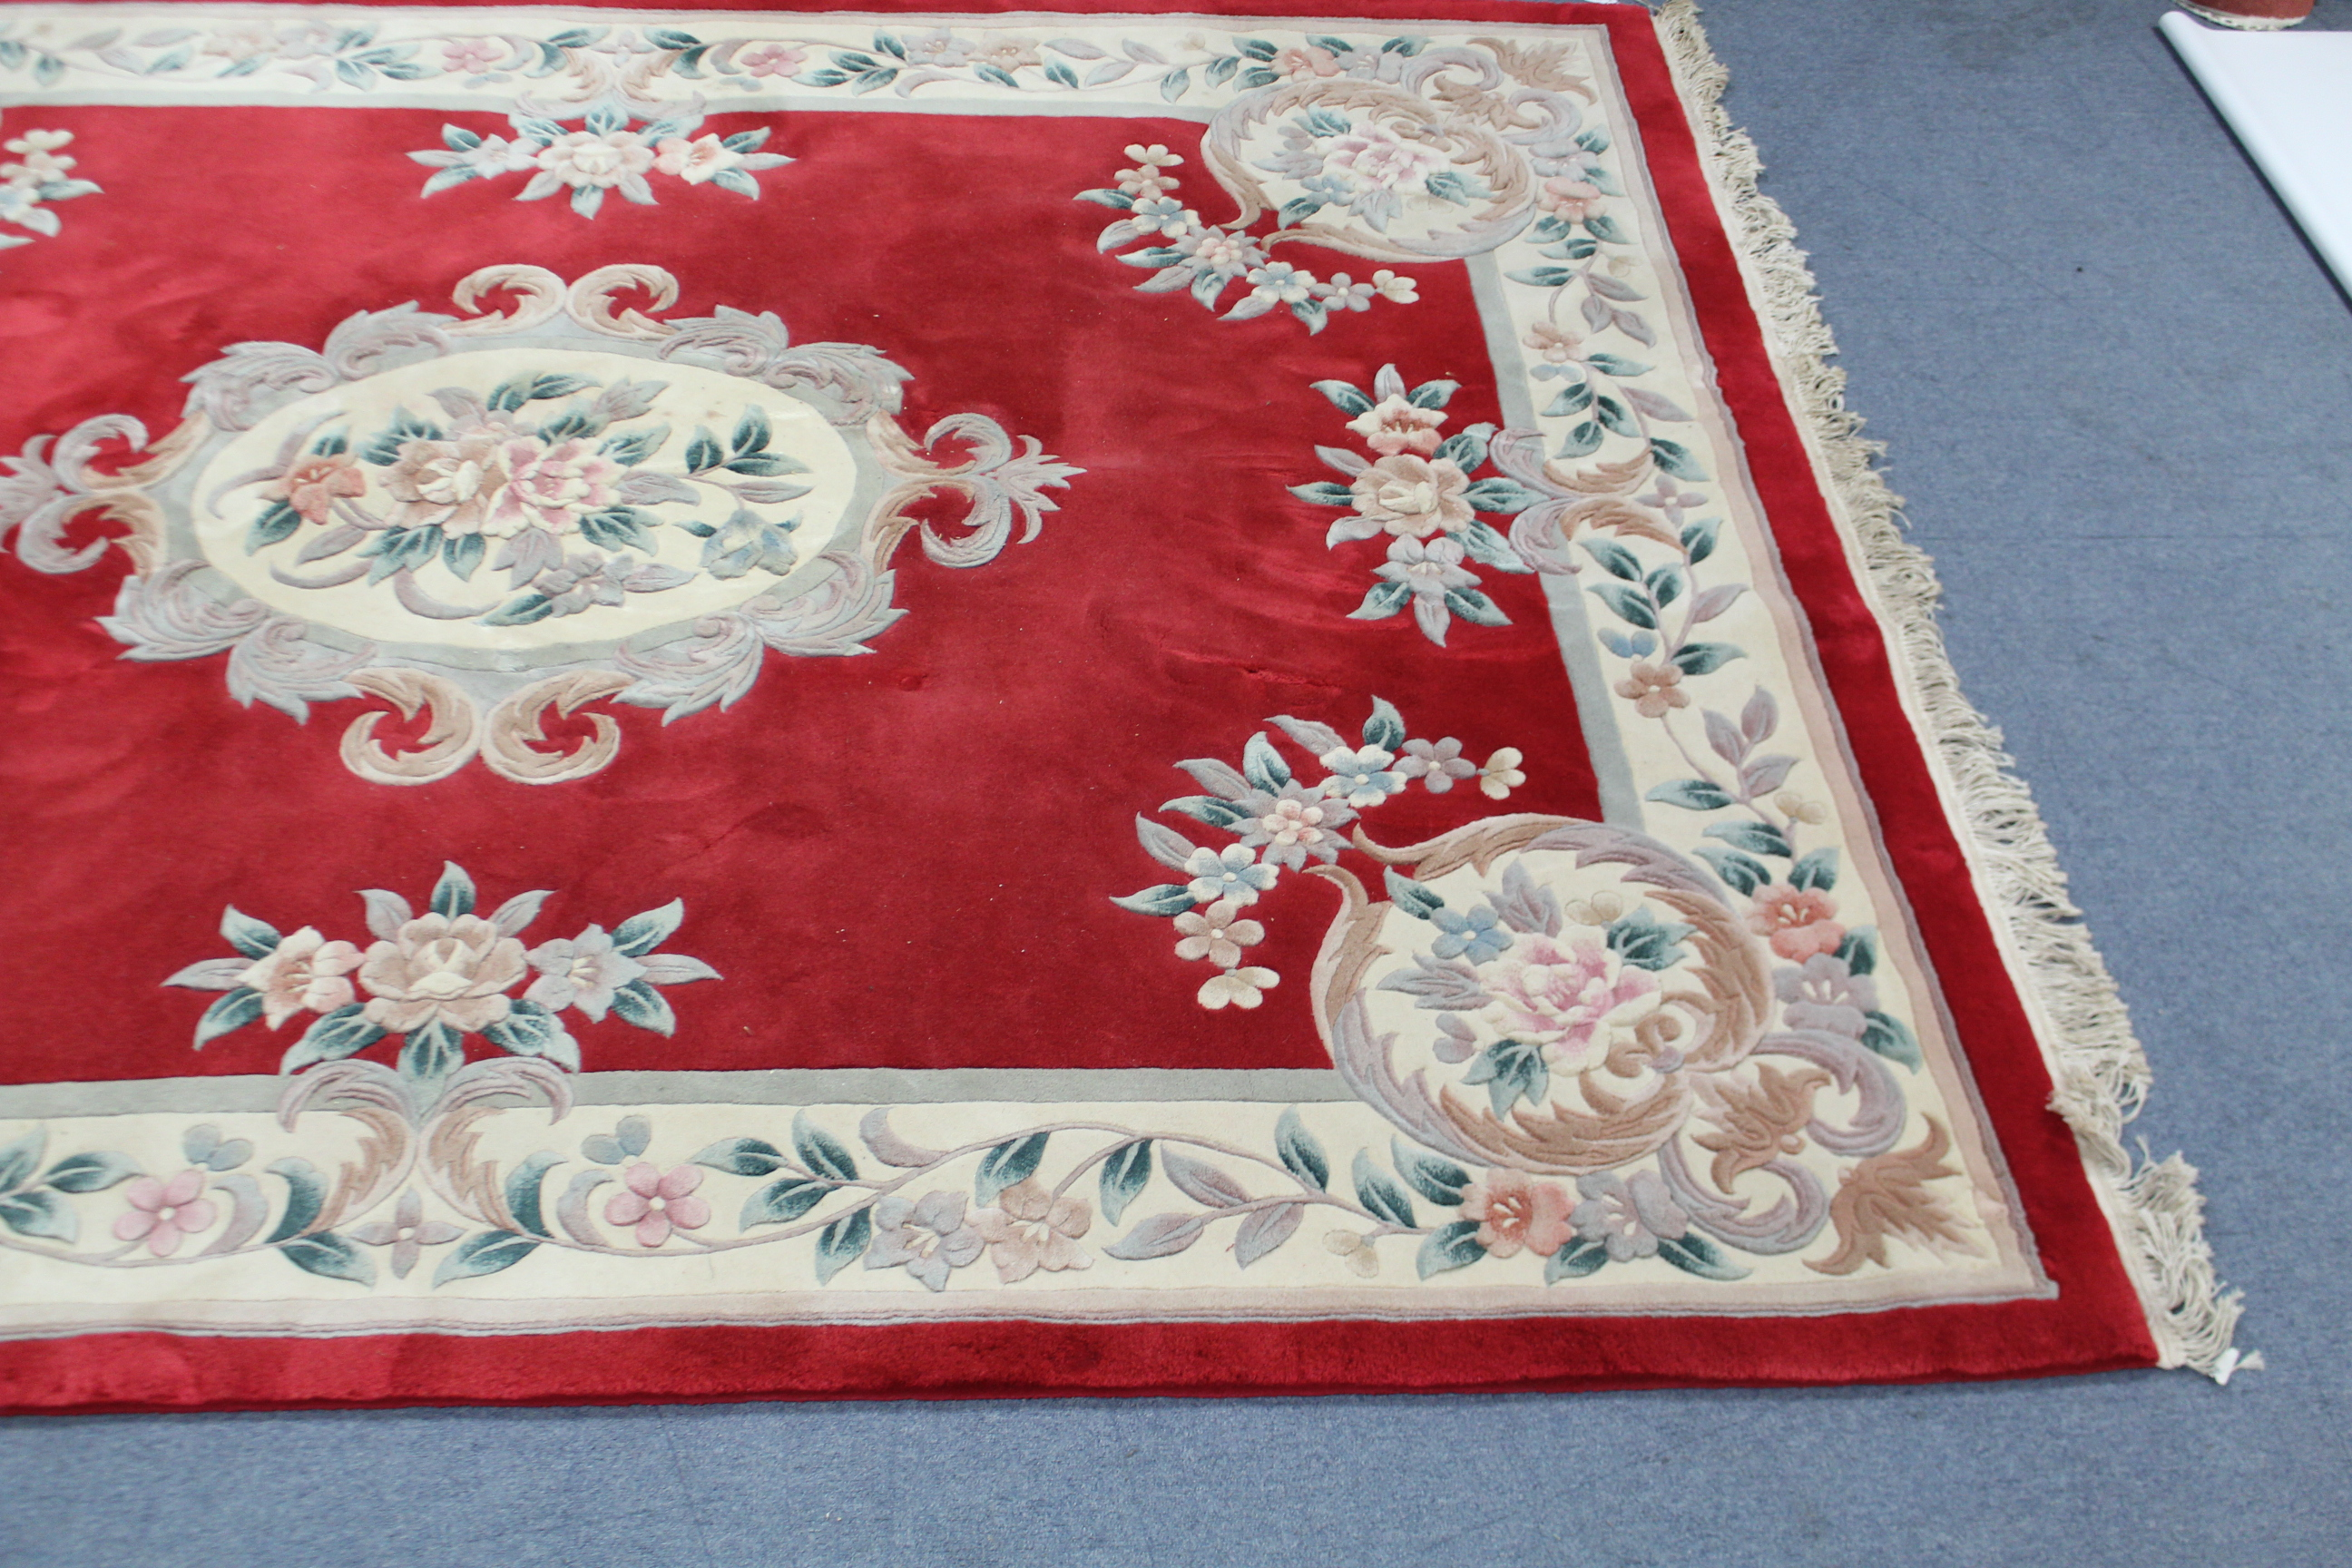 "Lot 152 - A Chinese carpet of crimson ground with central medallion & wide floral borders, 122"" x 95""."